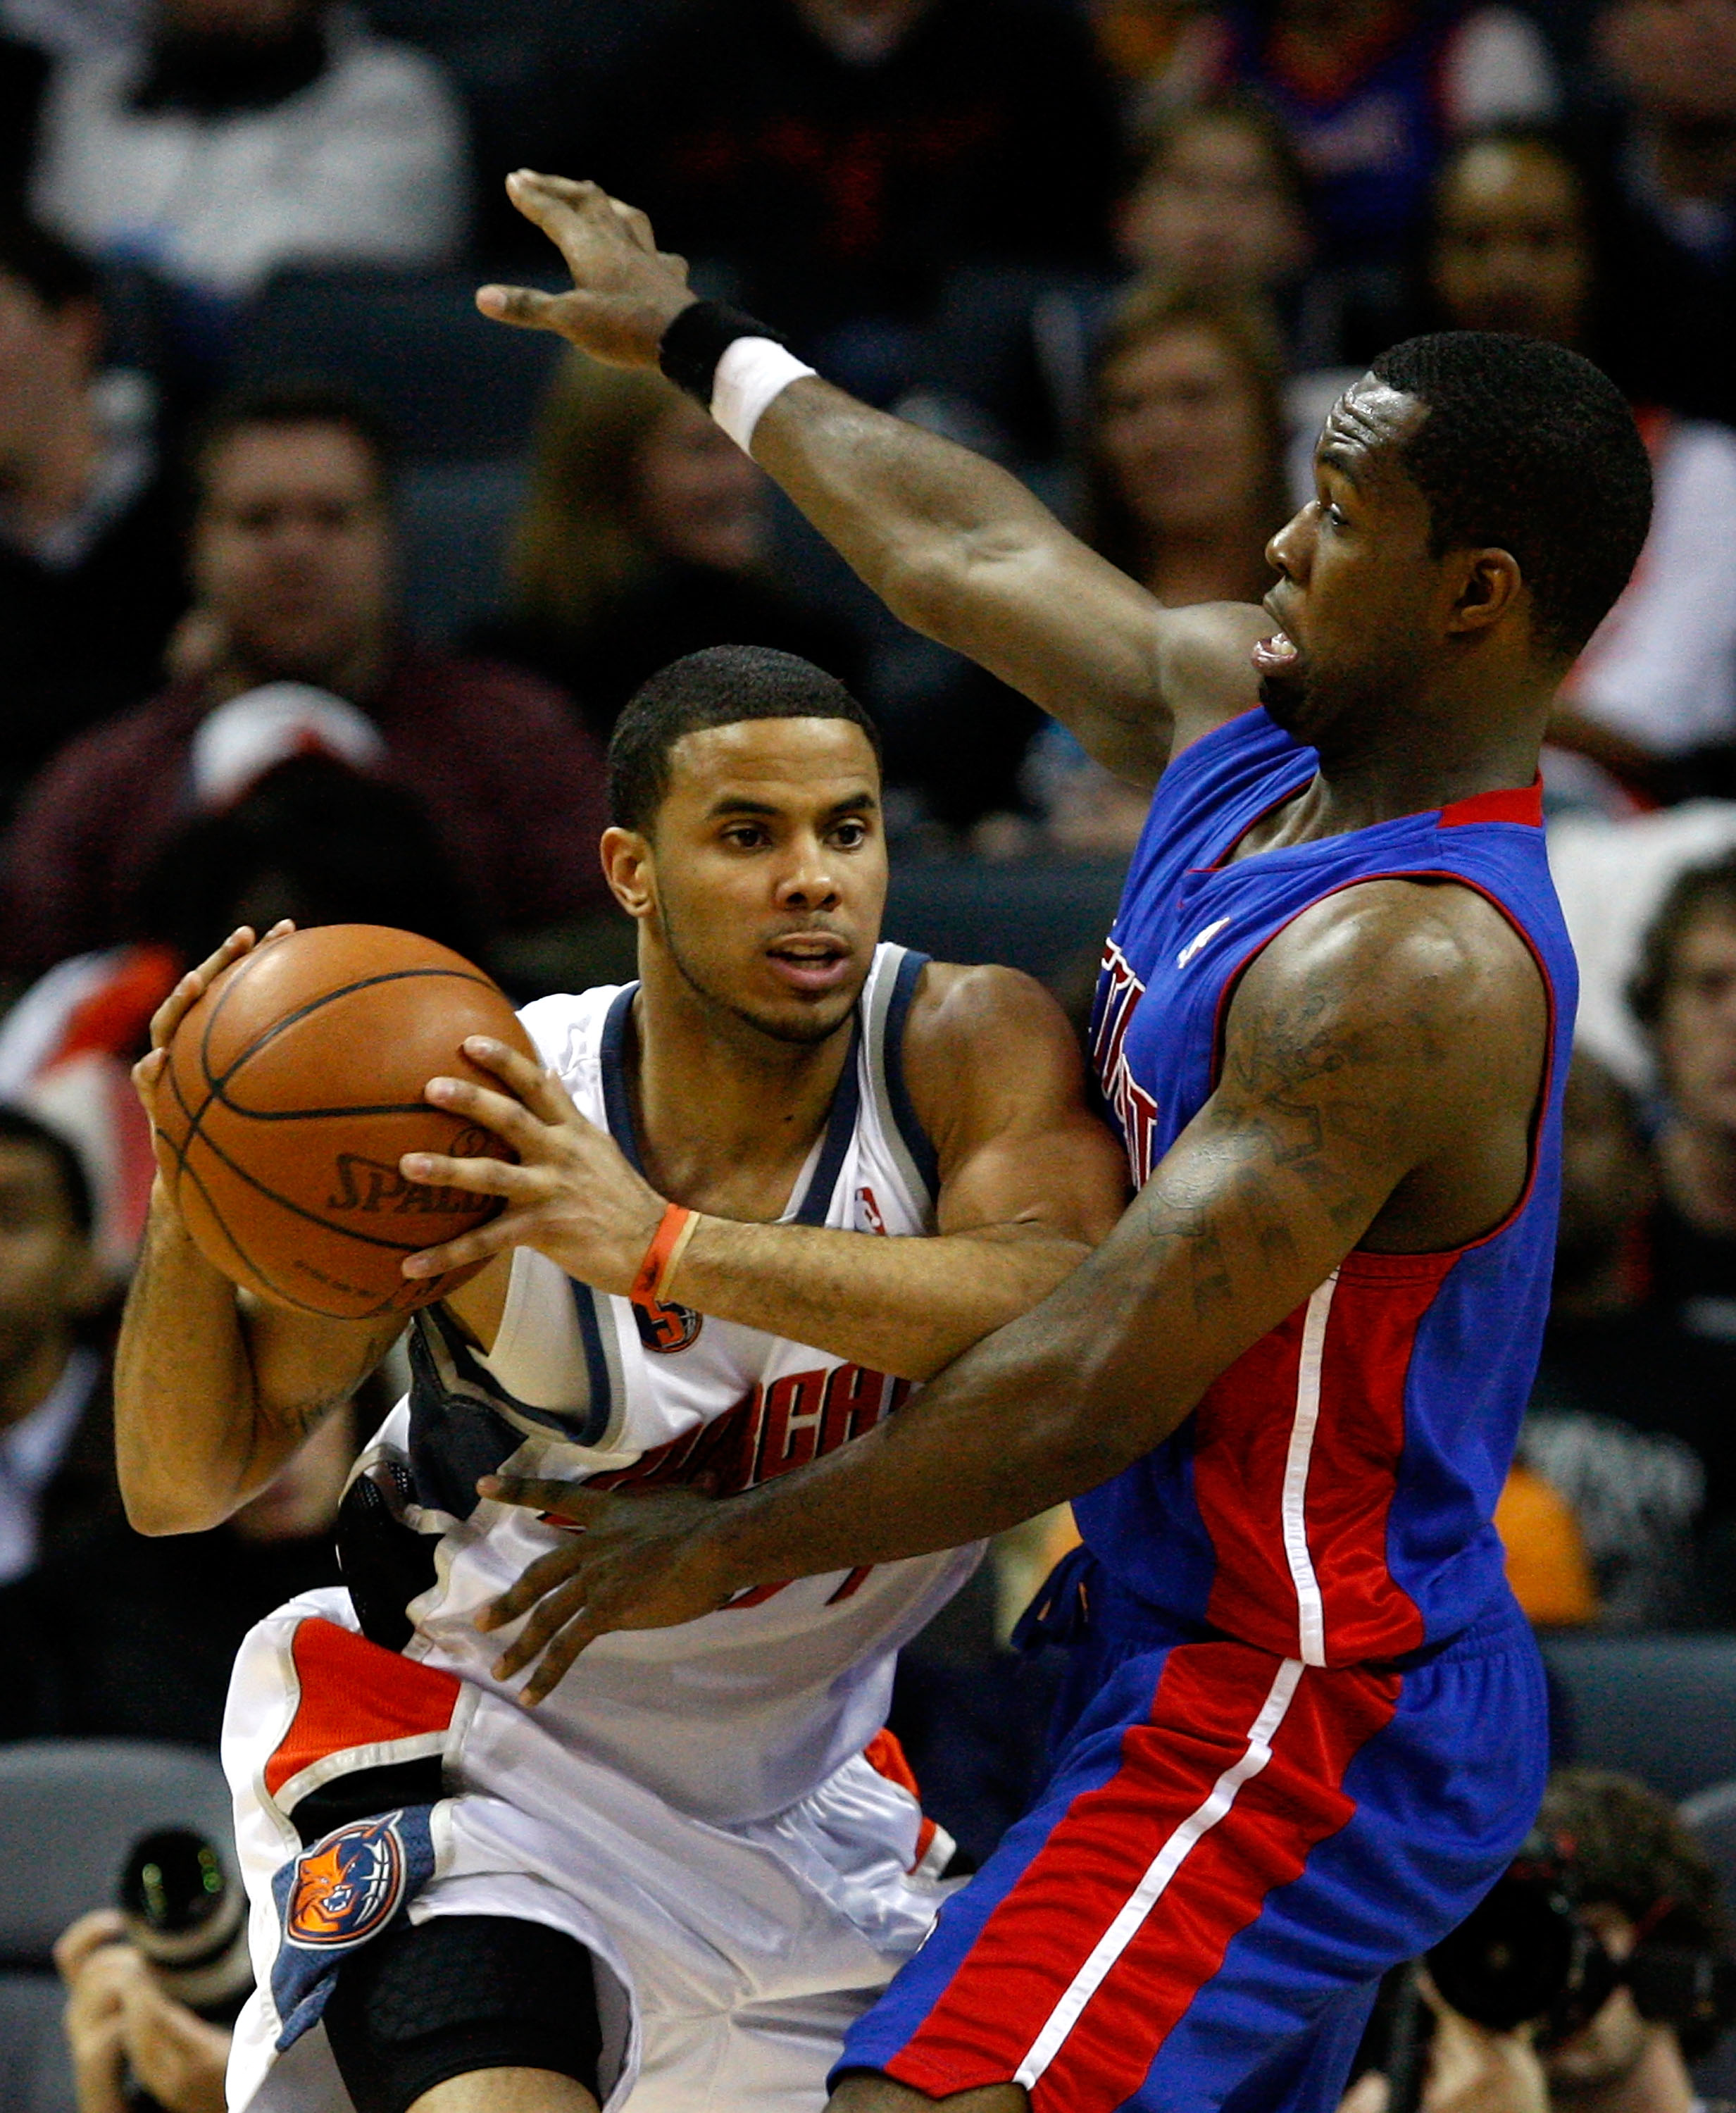 CHARLOTTE, NC - DECEMBER 13:  D.J. Augustin #14 of the Charlotte Bobcats tries to keep the ball away from Rodney Stuckey #3 of the Detroit Pistons during their game at Time Warner Cable Arena on December 13, 2008 in Charlotte, North Carolina.  NOTE TO USE